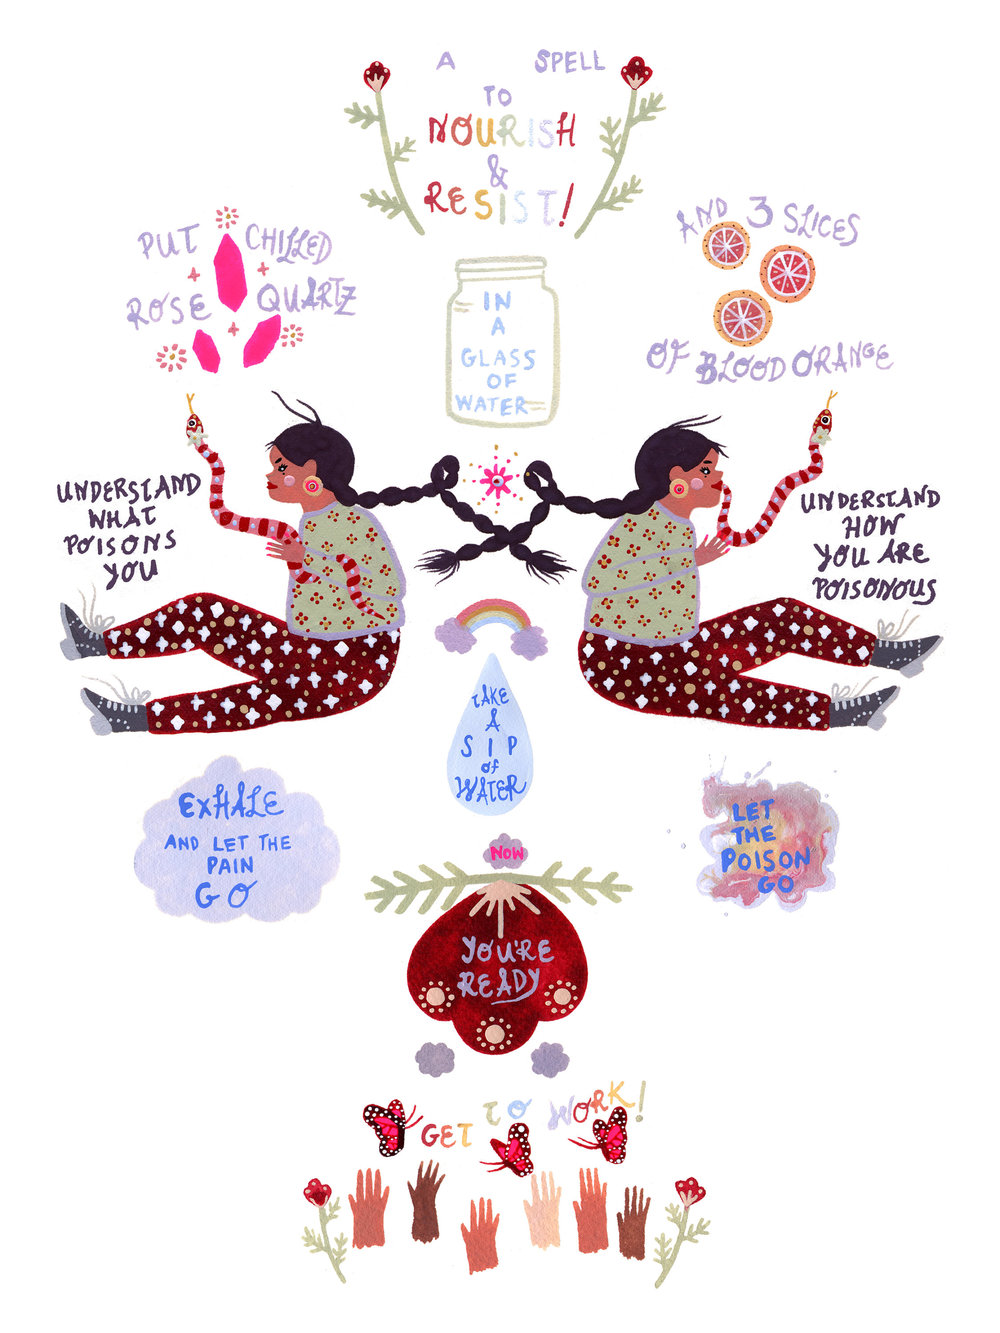 Self Care Spell Illustration by Rebecca Artemisa. Click the image to visit her etsy page, which is full of magical self care themed tools, zines, and illustrations to inspire activism and justice.